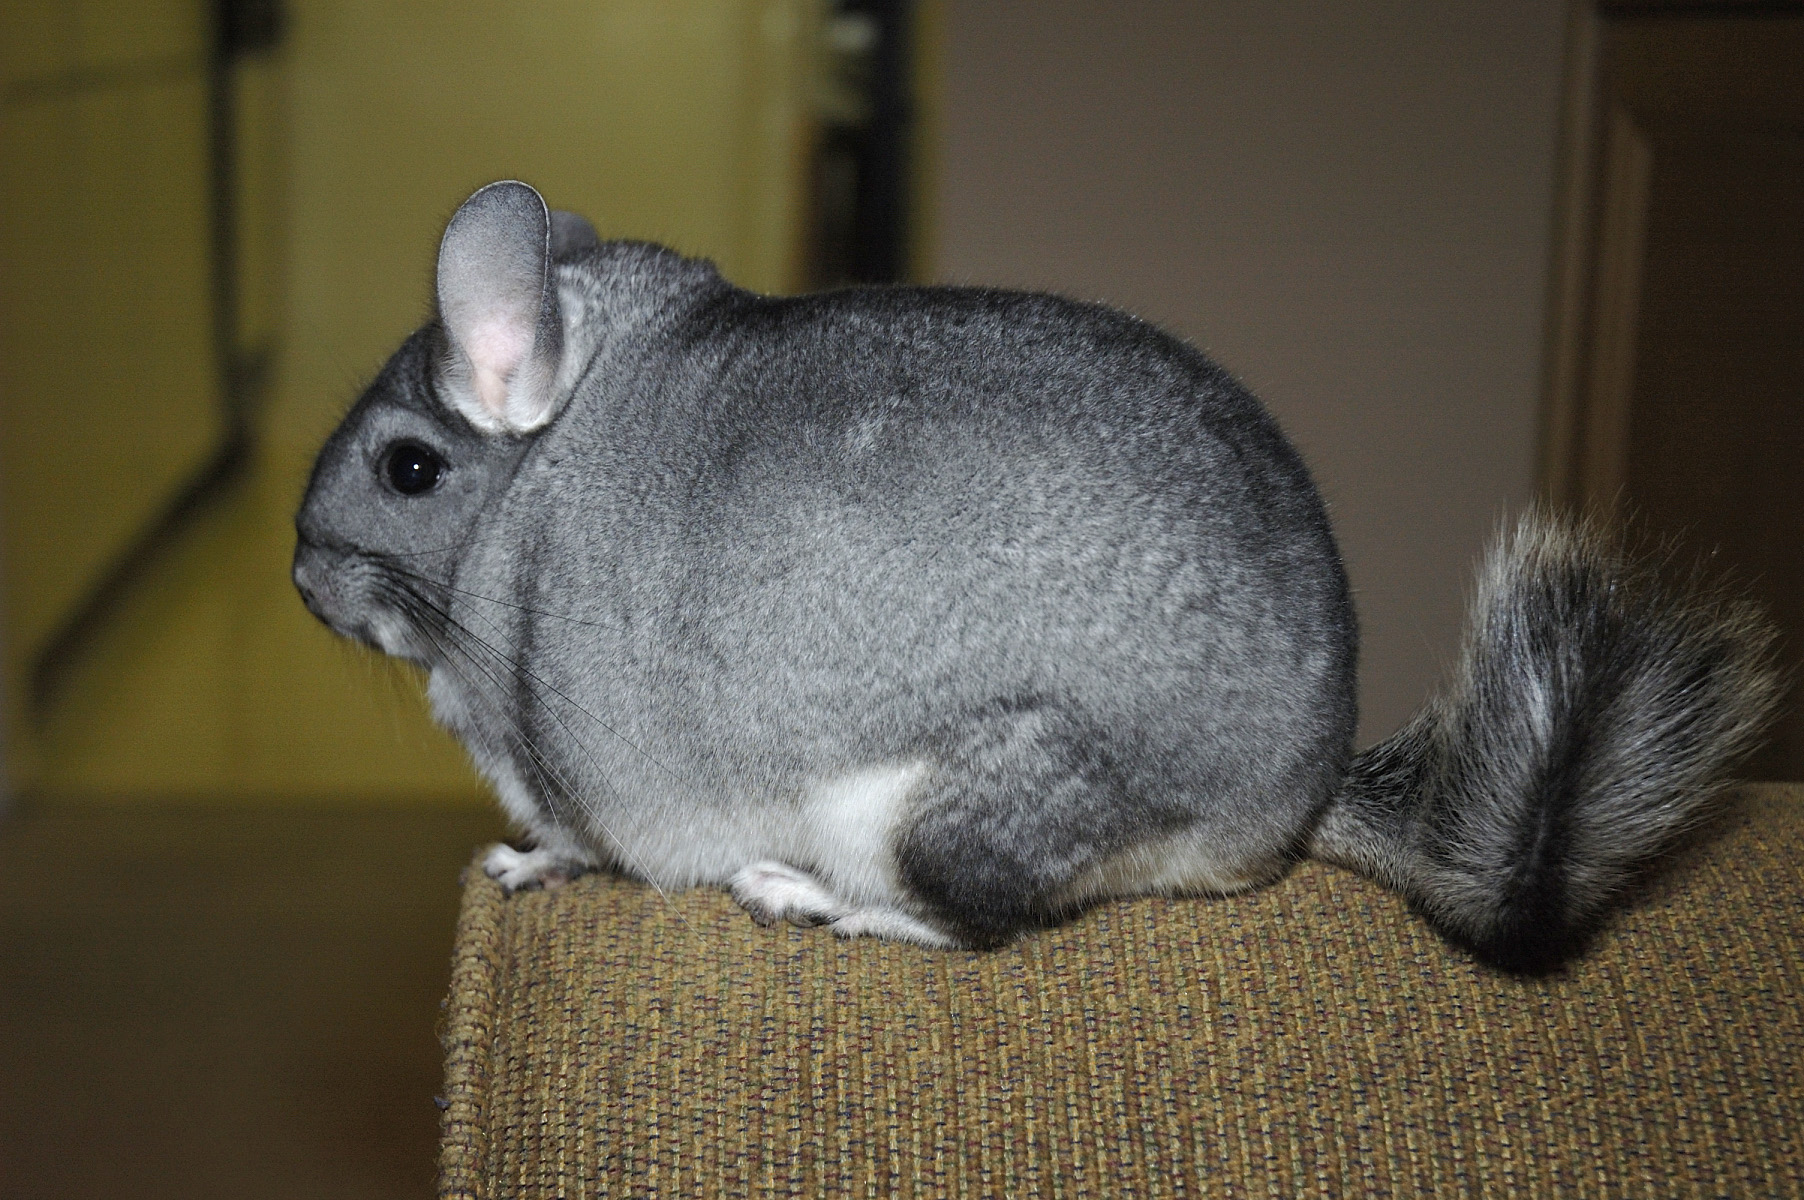 File:Chinchilla lanigera1.jpg - Wikipedia